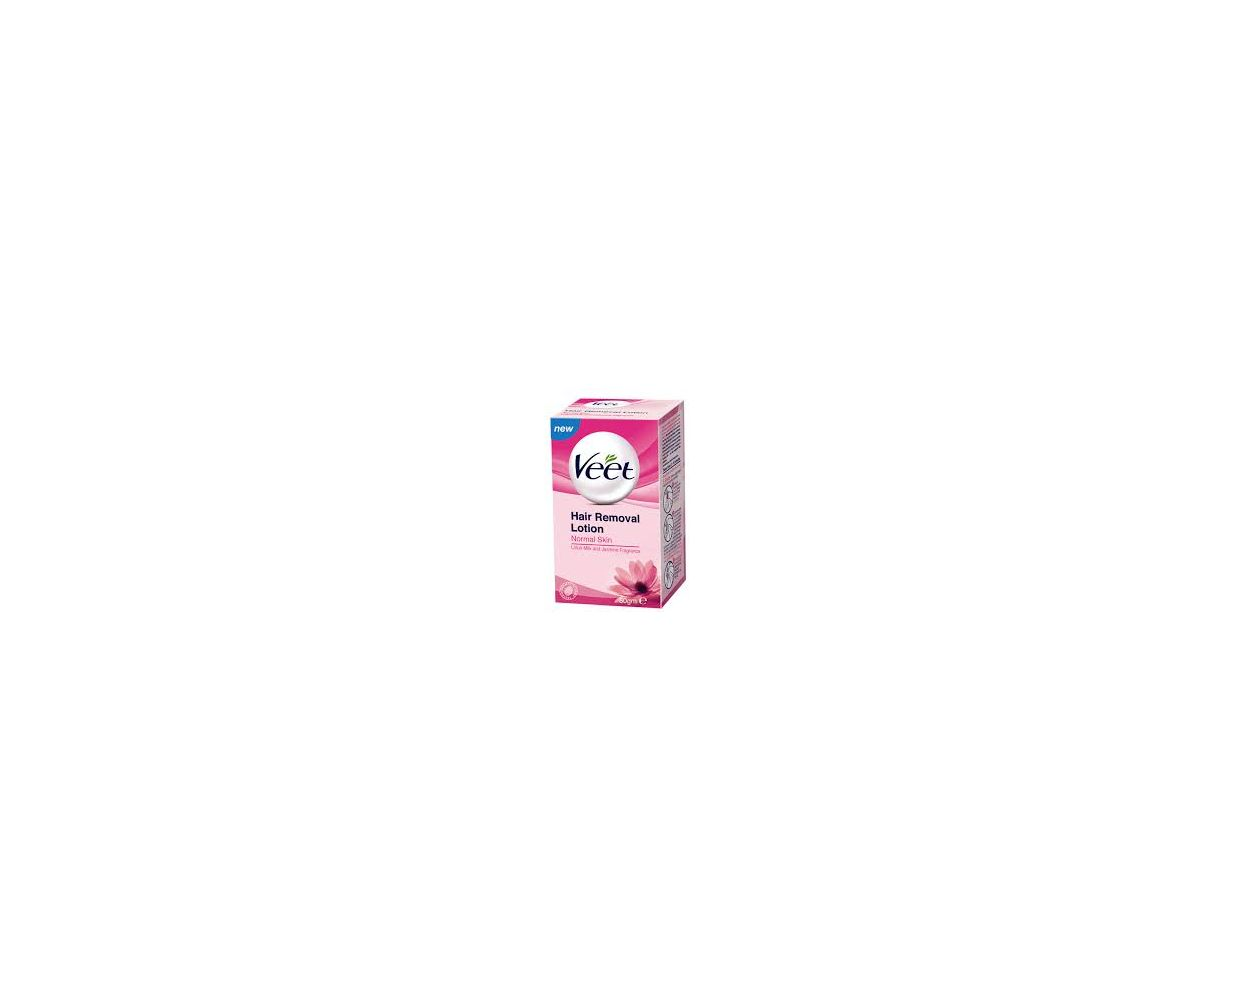 Veet Lotion Normal Skin 80gm 2 Hours Free Delivery Anywhere In